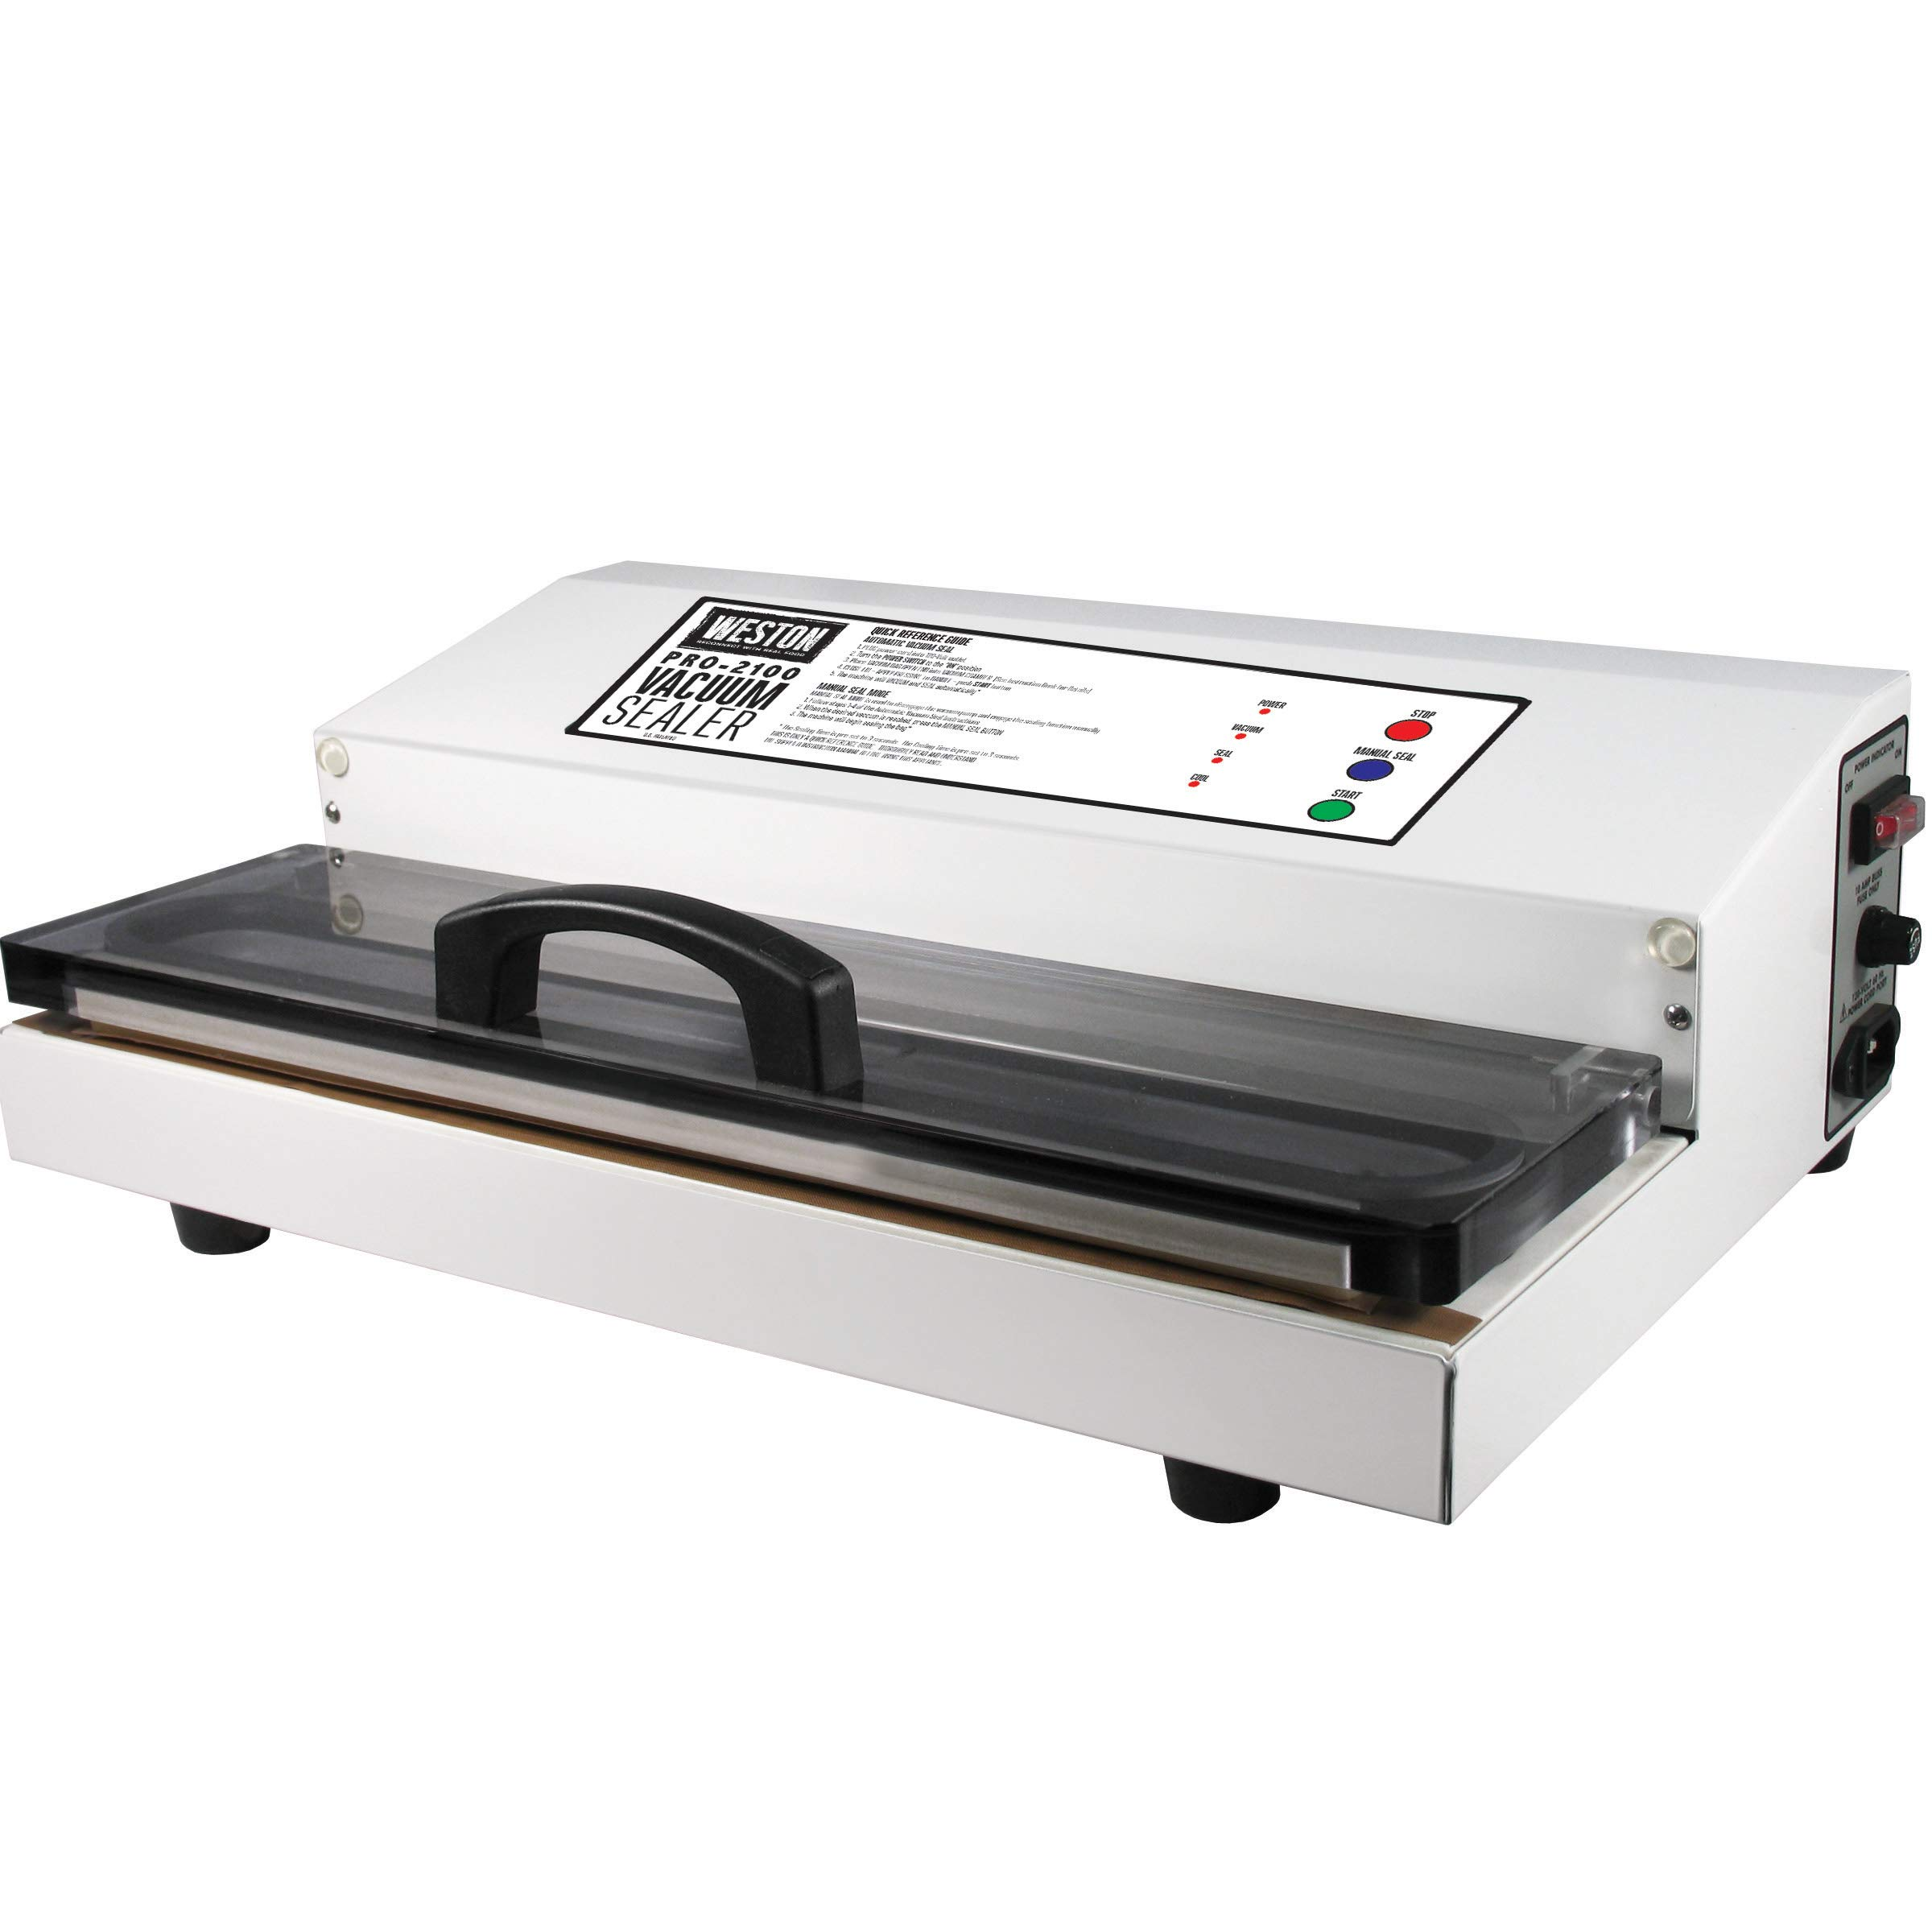 Weston 65-0101 Commercial Grade Vacuum Sealer 15'' Wide Pro-2100 (White) by Weston